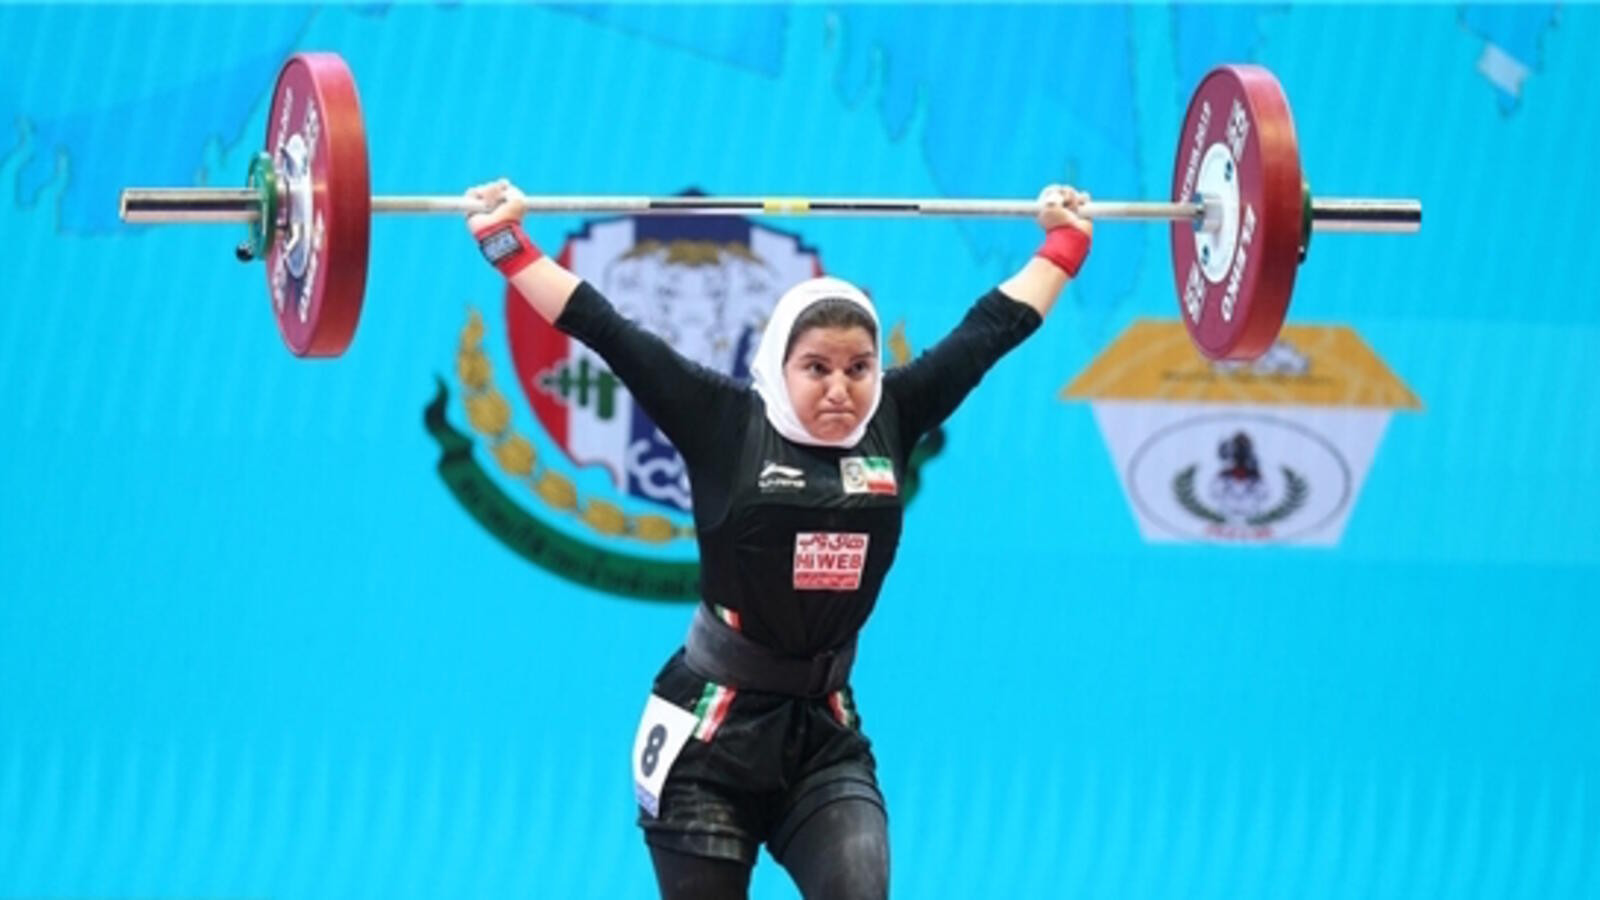 Poupak Basami was the first woman to lift for Iran ©IRIWF